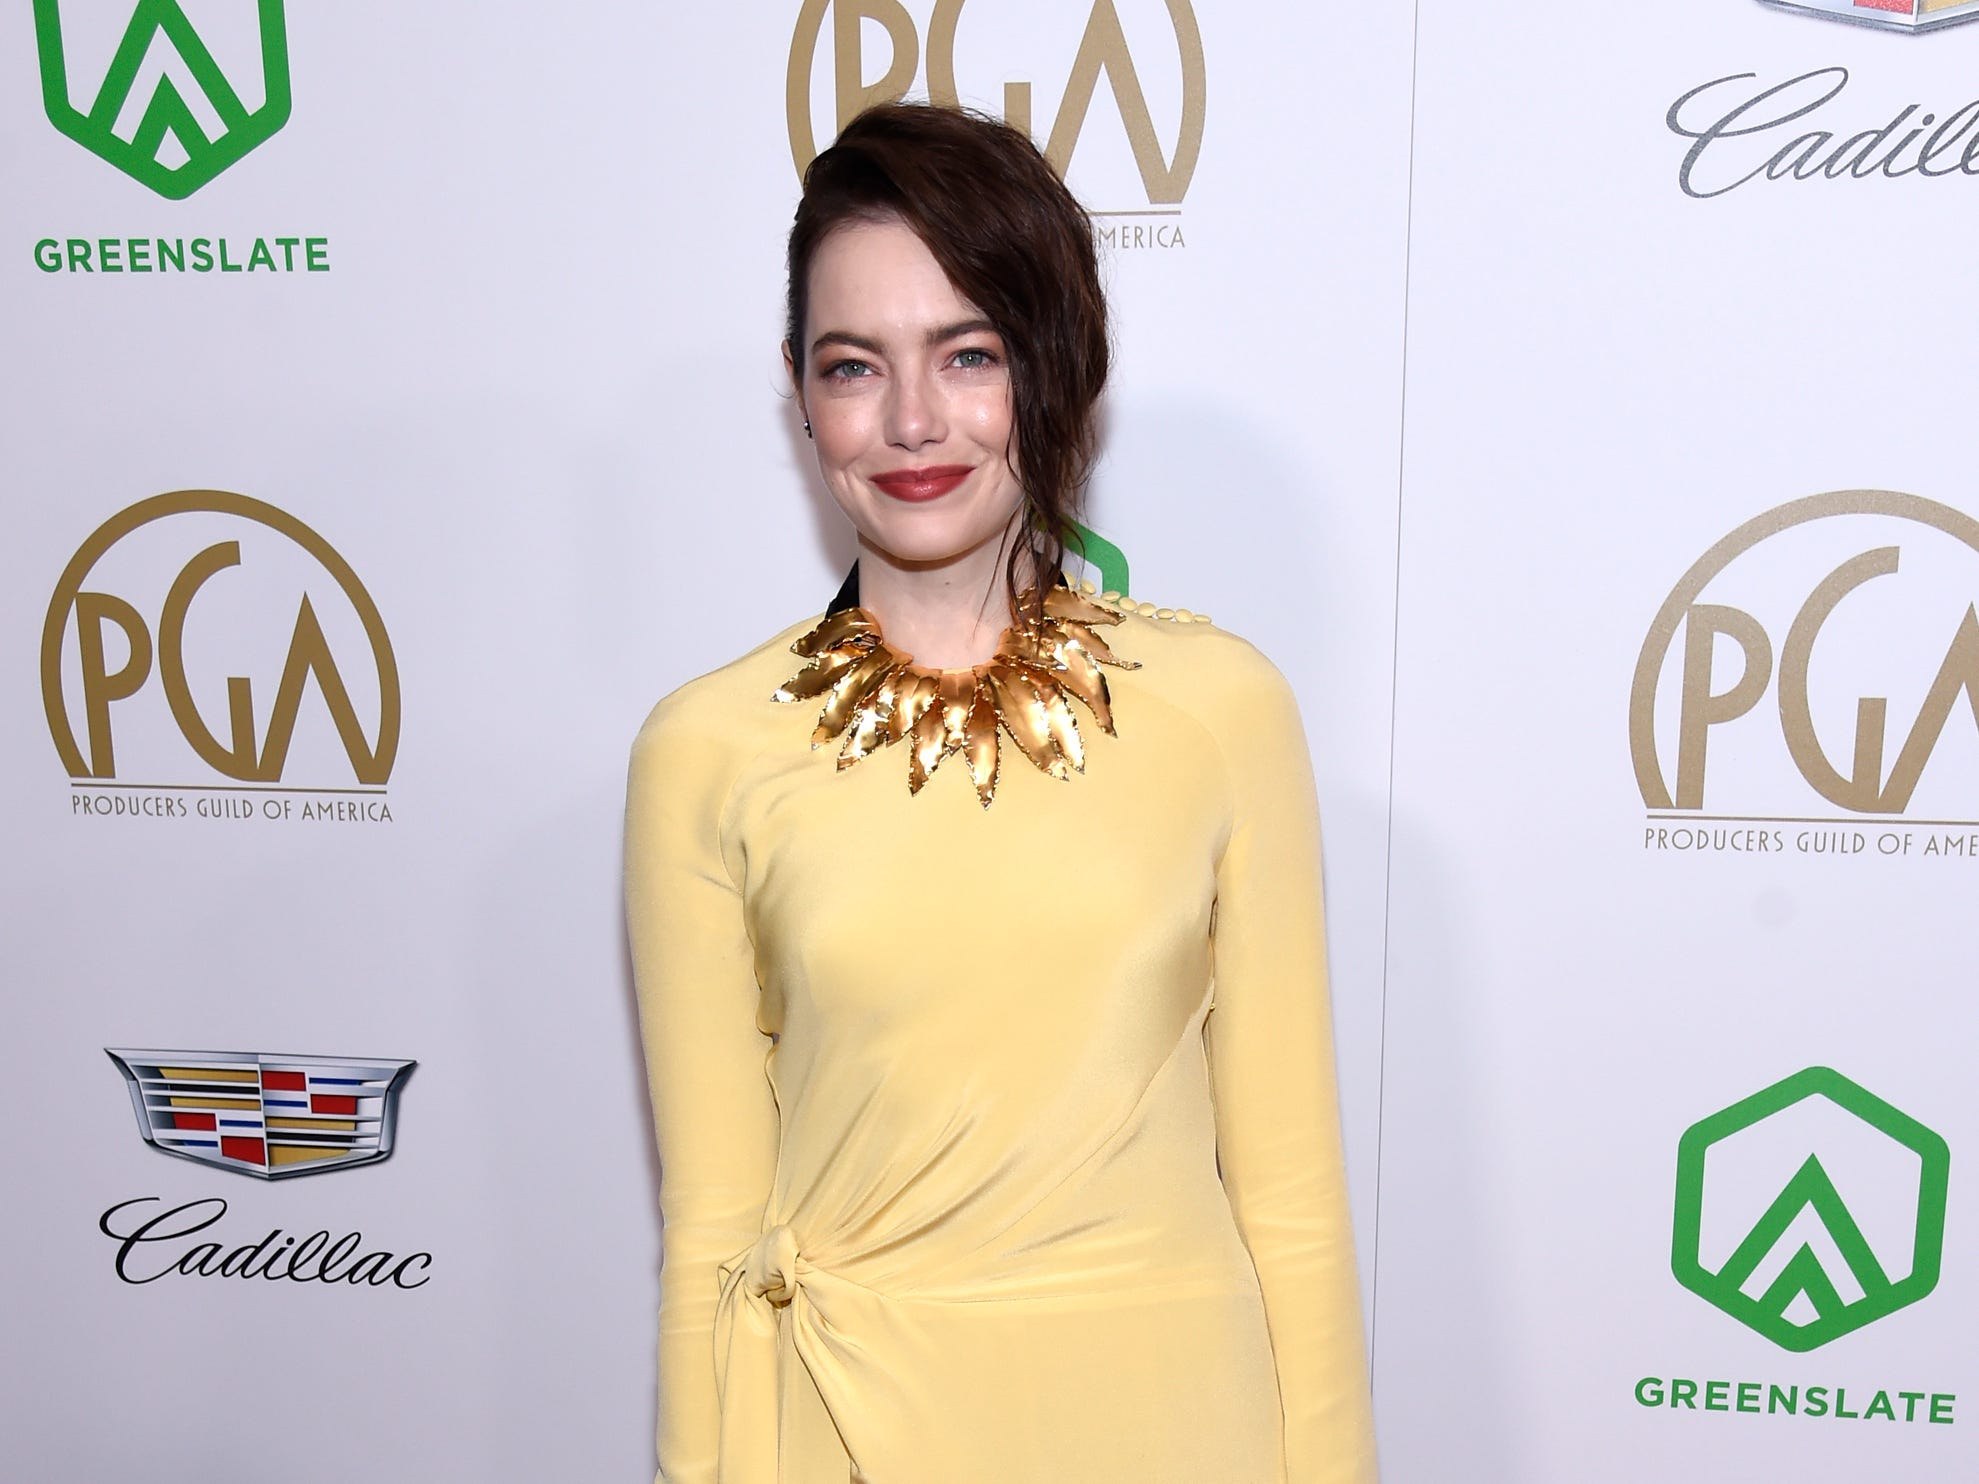 Emma Stone arrives at the Producers Guild Awards on Saturday, Jan. 19, 2019, at the Beverly Hilton Hotel in Beverly Hills, Calif. (Photo by Chris Pizzello/Invision/AP) ORG XMIT: CAPM129